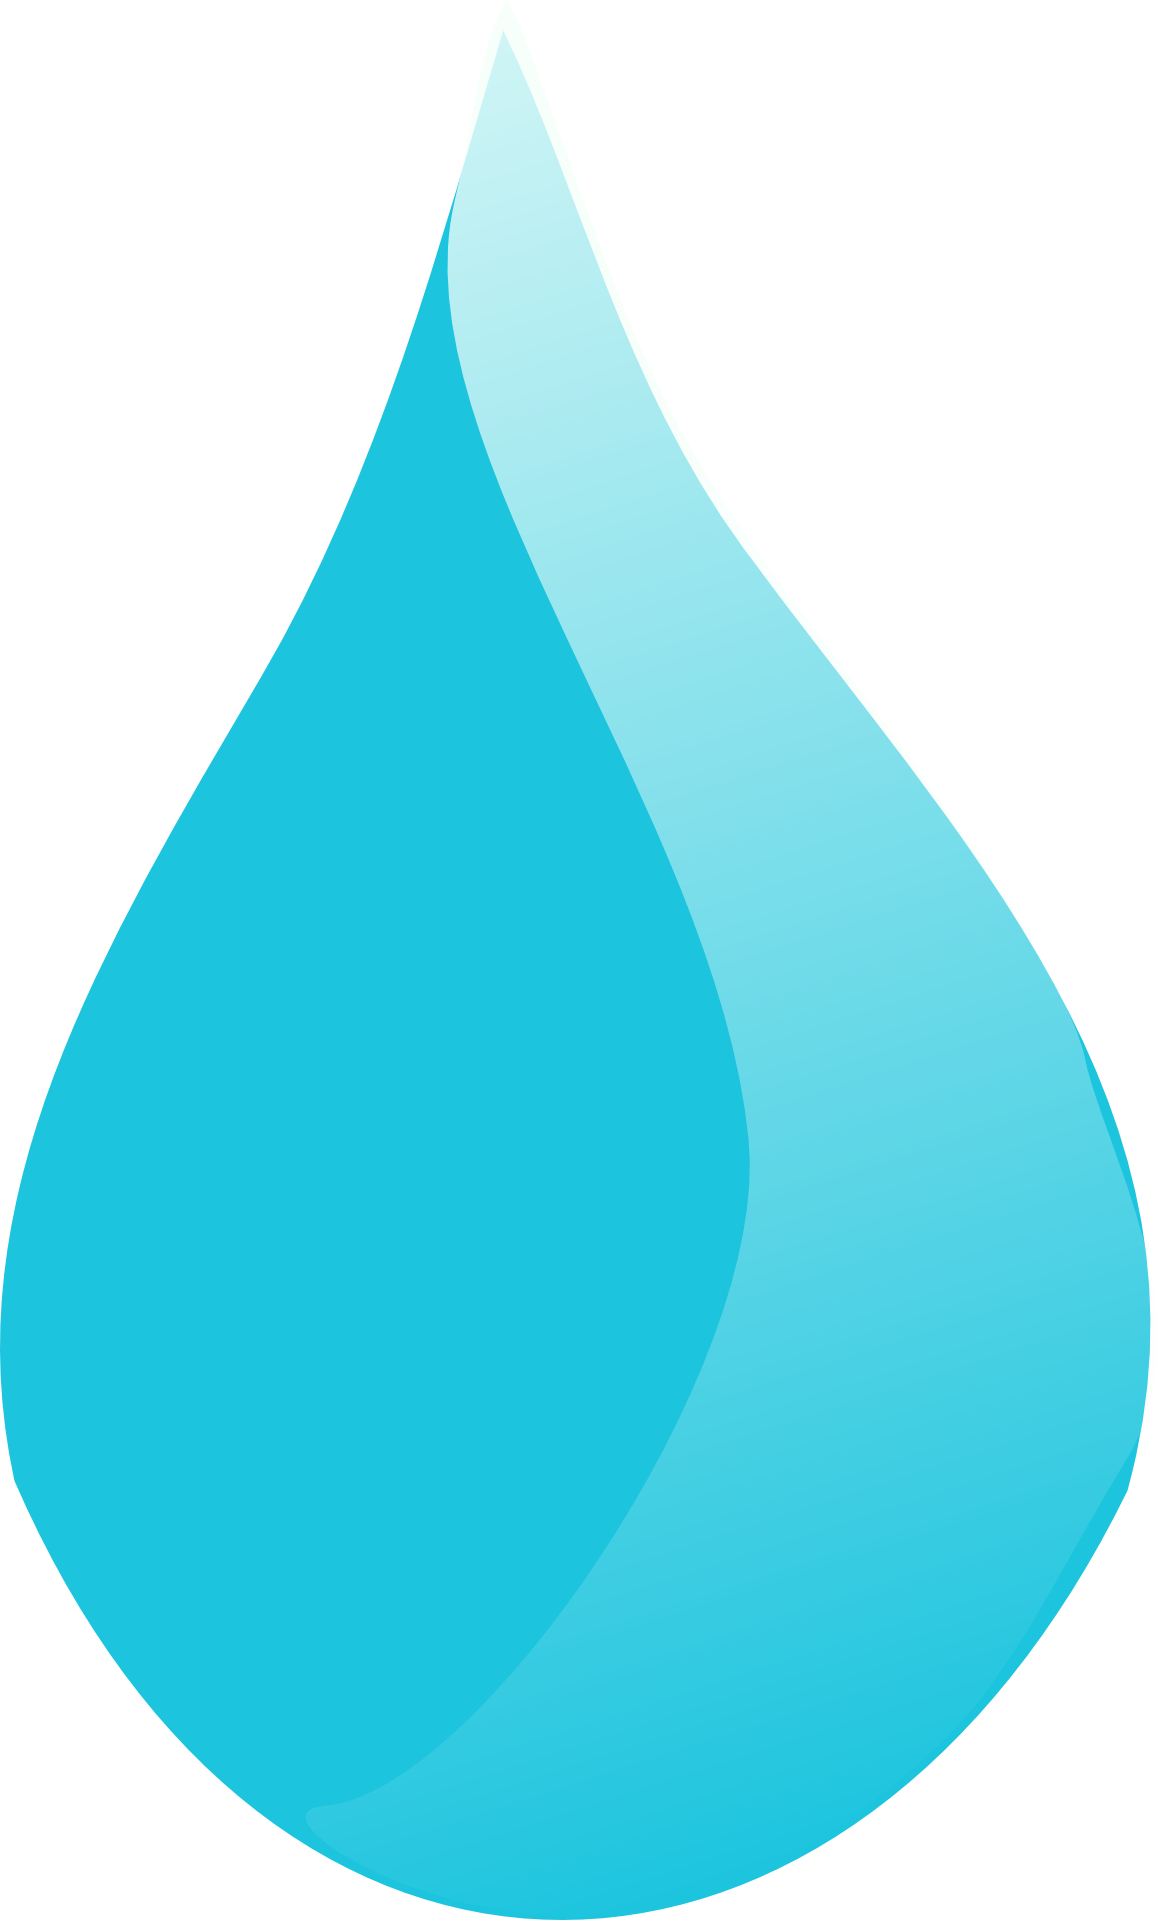 Teardrop Template - Clipart library. Water drop, rain drop,blue, liquid, teardrop ,cartoon vector